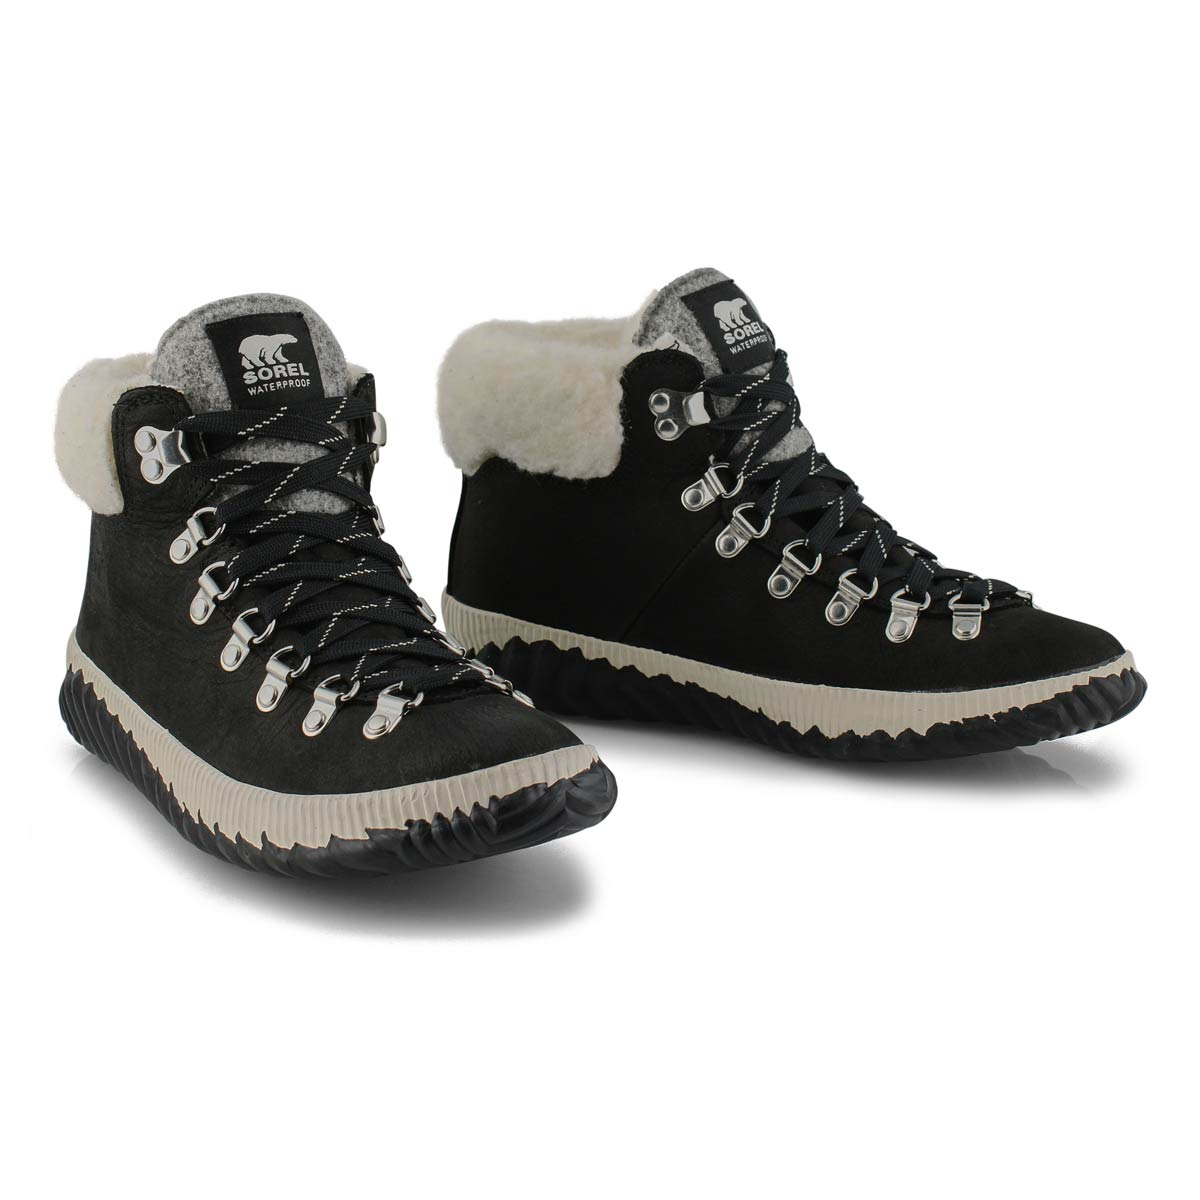 Women's Out'N About Plus Conquest Boot - Black